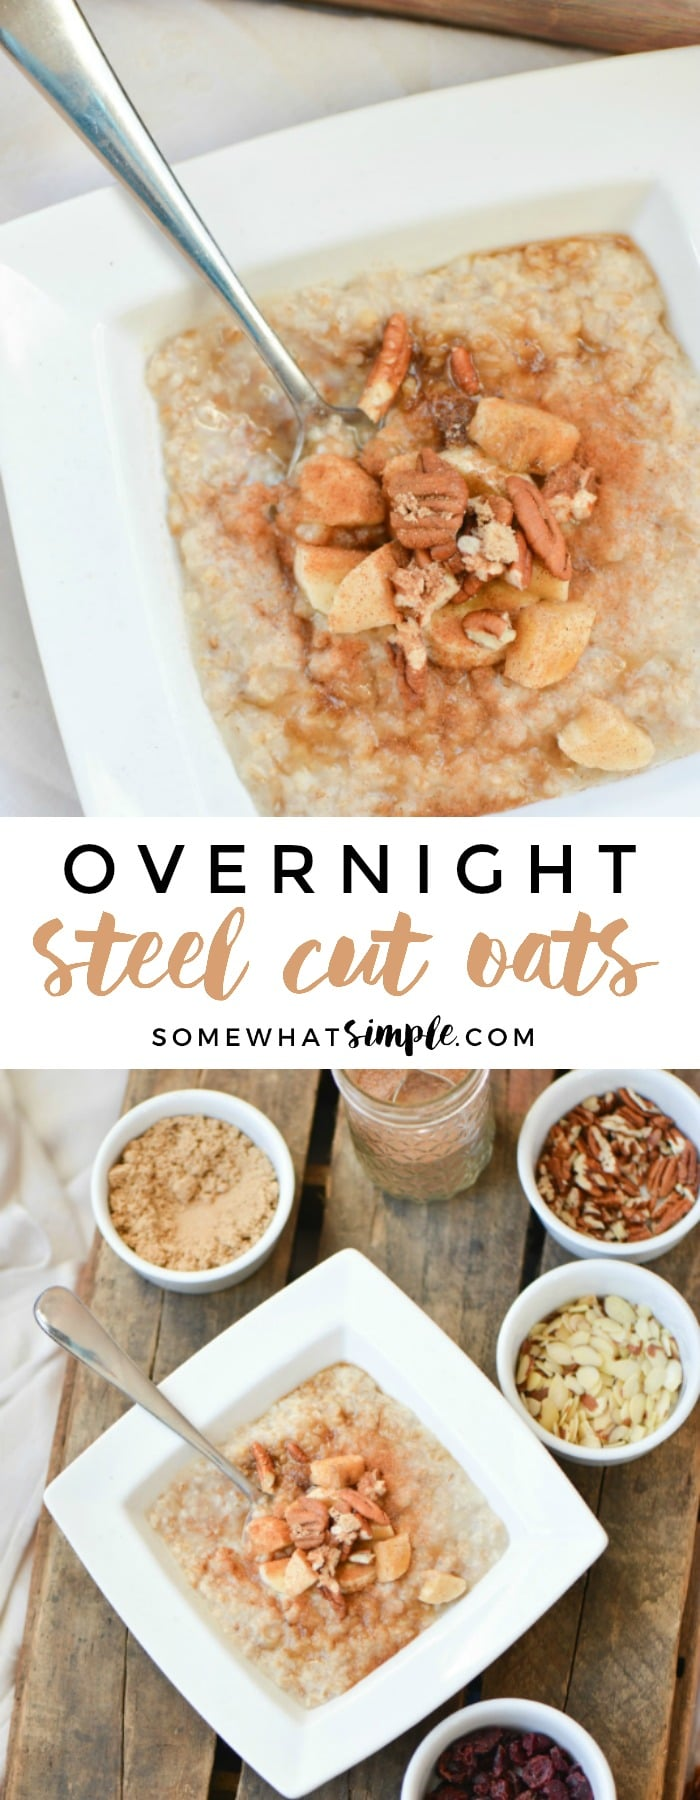 This overnight steel cut oats recipe is a mother's dream! Take a few minutes in the evening to prepare a pot of overnight oatmeal, and you'll wake up to a healthy breakfast that keeps your kids satisfied until lunch!